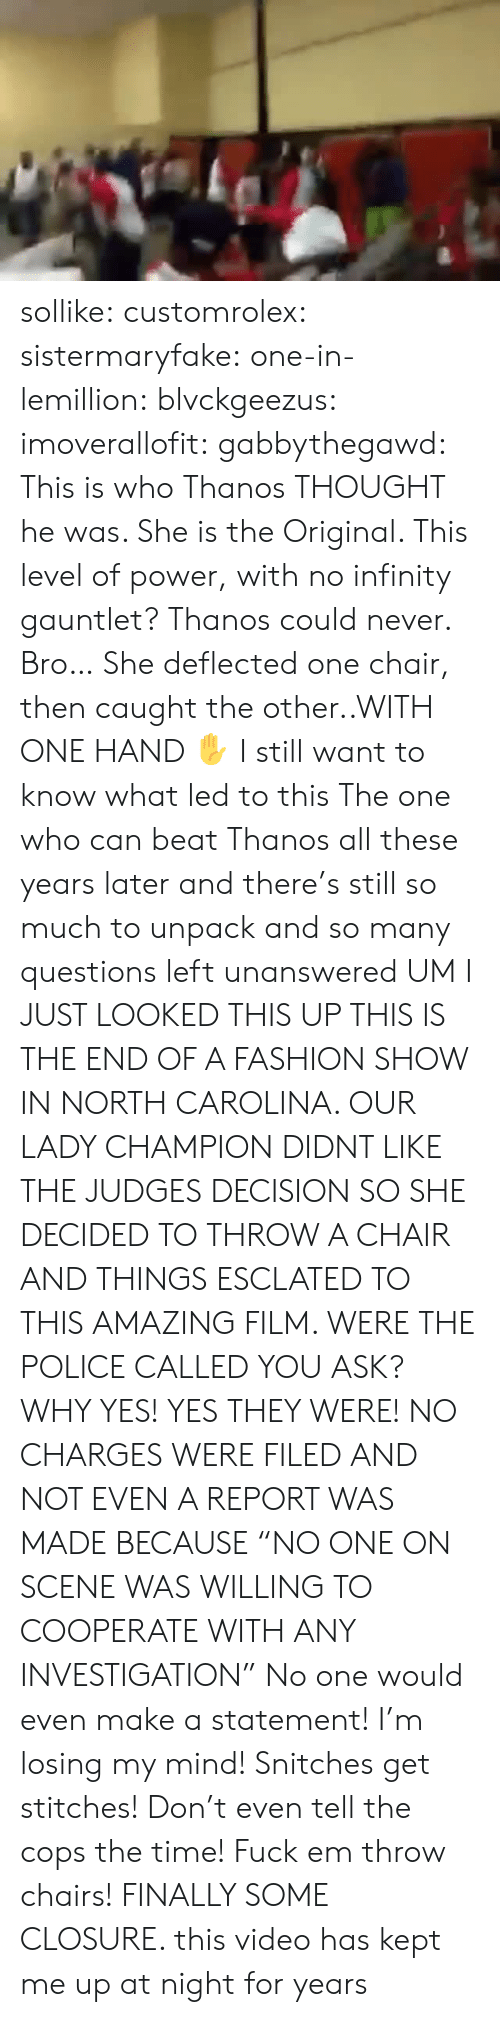 "North Carolina: sollike: customrolex:   sistermaryfake:  one-in-lemillion:  blvckgeezus:  imoverallofit:   gabbythegawd: This is who Thanos THOUGHT he was. She is the Original. This level of power, with no infinity gauntlet? Thanos could never.  Bro… She deflected one chair, then caught the other..WITH ONE HAND ✋   I still want to know what led to this    The one who can beat Thanos   all these years later and there's still so much to unpack and so many questions left unanswered   UM I JUST LOOKED THIS UP  THIS IS THE END OF A FASHION SHOW IN NORTH CAROLINA. OUR LADY CHAMPION DIDNT LIKE THE JUDGES DECISION SO SHE DECIDED TO THROW A CHAIR AND THINGS ESCLATED TO THIS AMAZING FILM.  WERE THE POLICE CALLED YOU ASK? WHY YES! YES THEY WERE!  NO CHARGES WERE FILED AND NOT EVEN A REPORT WAS MADE BECAUSE ""NO ONE ON SCENE WAS WILLING TO COOPERATE WITH ANY INVESTIGATION""  No one would even make a statement! I'm losing my mind! Snitches get stitches! Don't even tell the cops the time! Fuck em throw chairs!   FINALLY SOME CLOSURE. this video has kept me up at night for years"